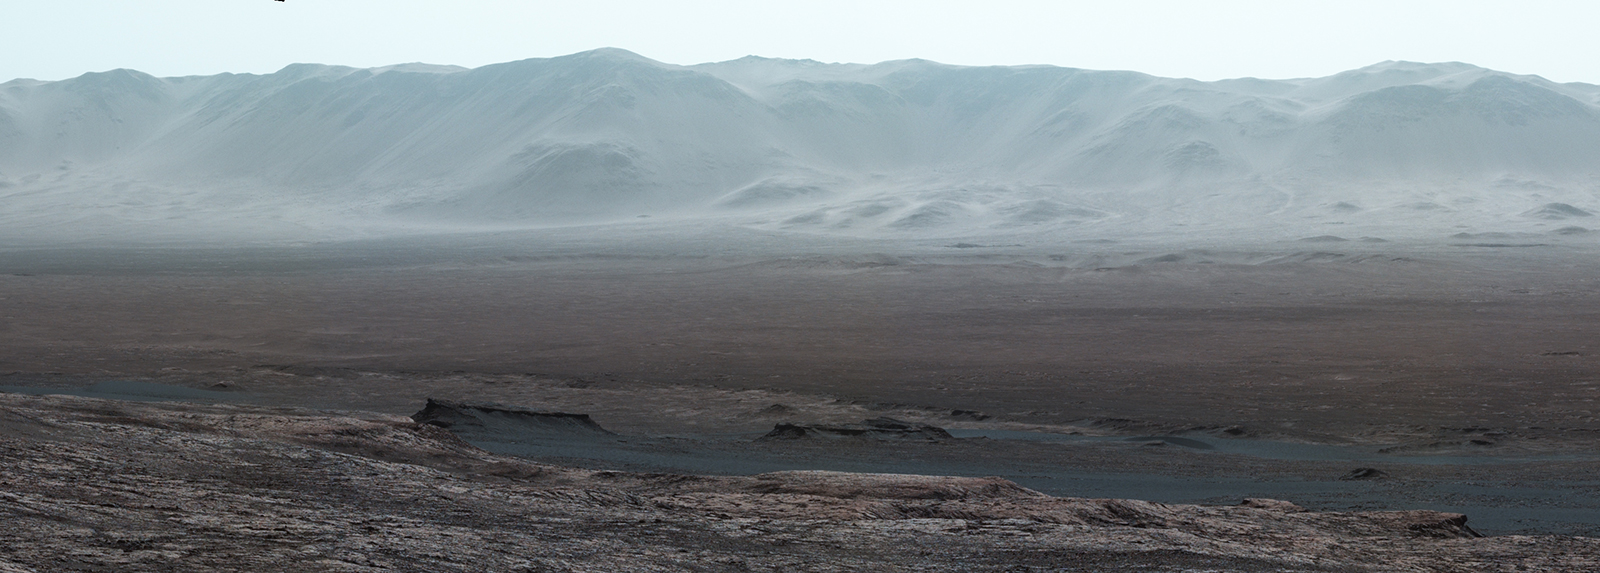 "Climbing ""Vera Rubin Ridge"" provided NASA's Curiosity Mars rover this vista of the interior and rim of Gale Crater, including much of the rover's route since its 2012 landing and features up to about 50 miles away. The left-eye camera of the rover's Mastcam took the component images Oct. 25, 2017."